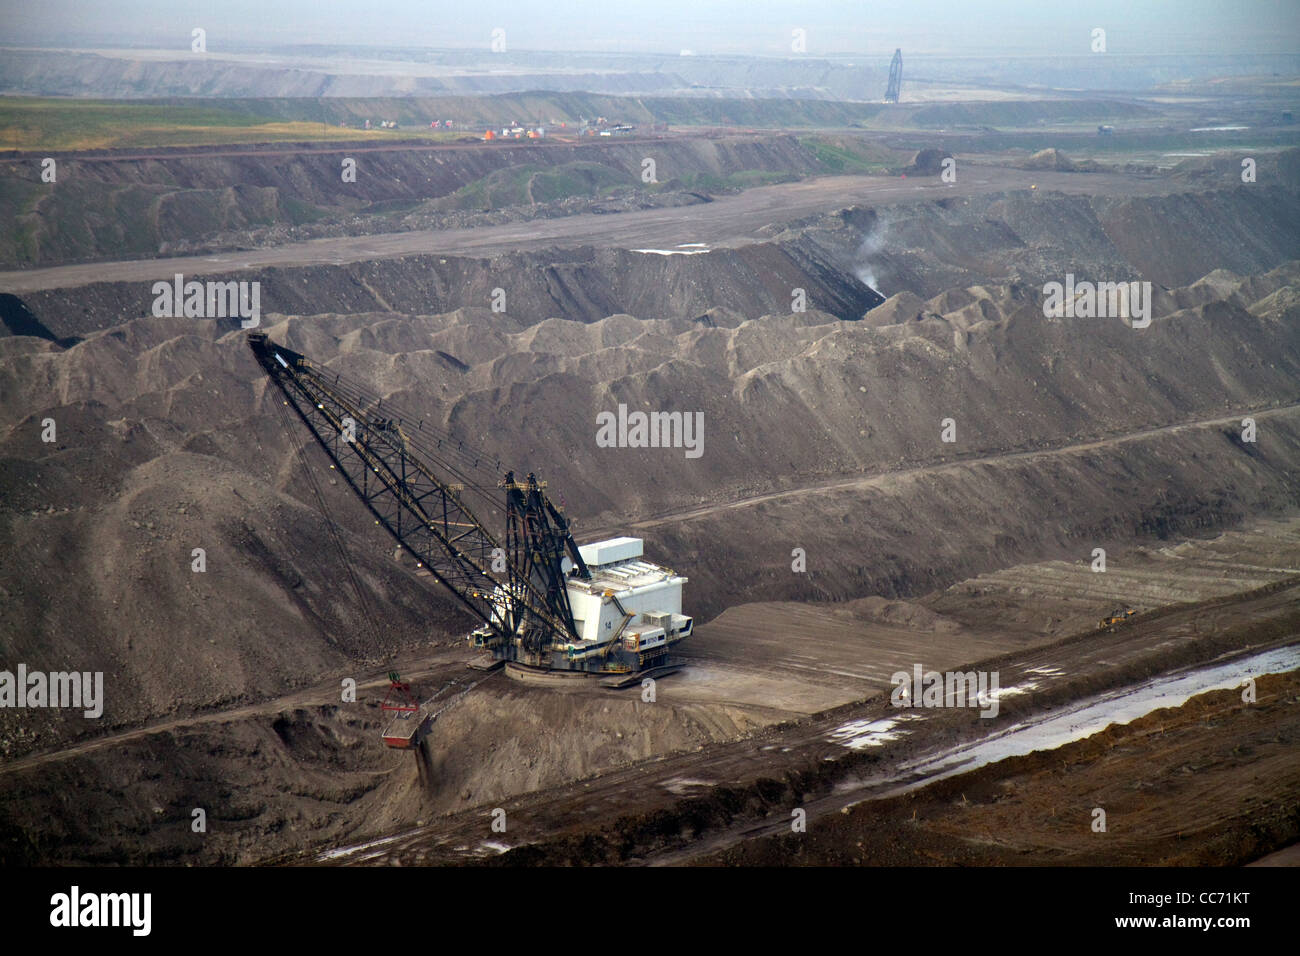 Aerial view of a dragline being used in the process of coal surface mining in Campbell County, Wyoming, USA. - Stock Image